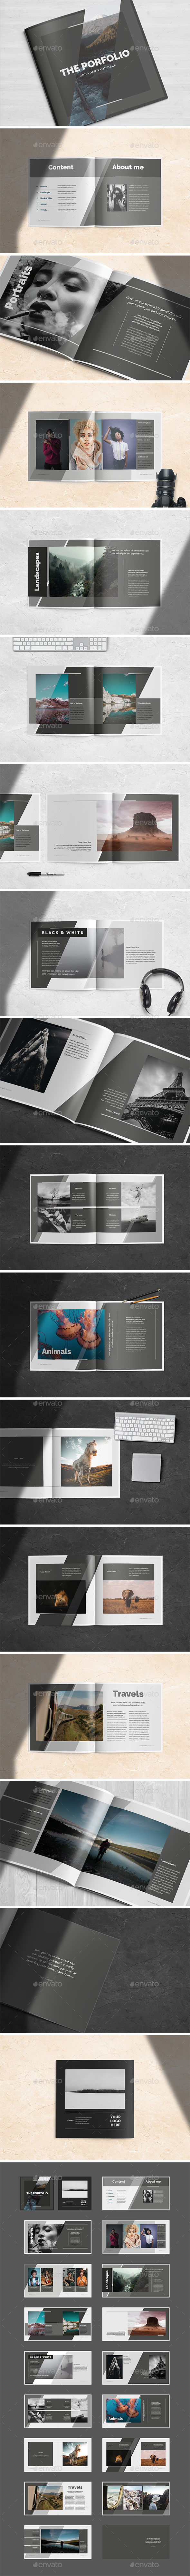 Multipurpose Porfolio Template - Brochures Print Templates